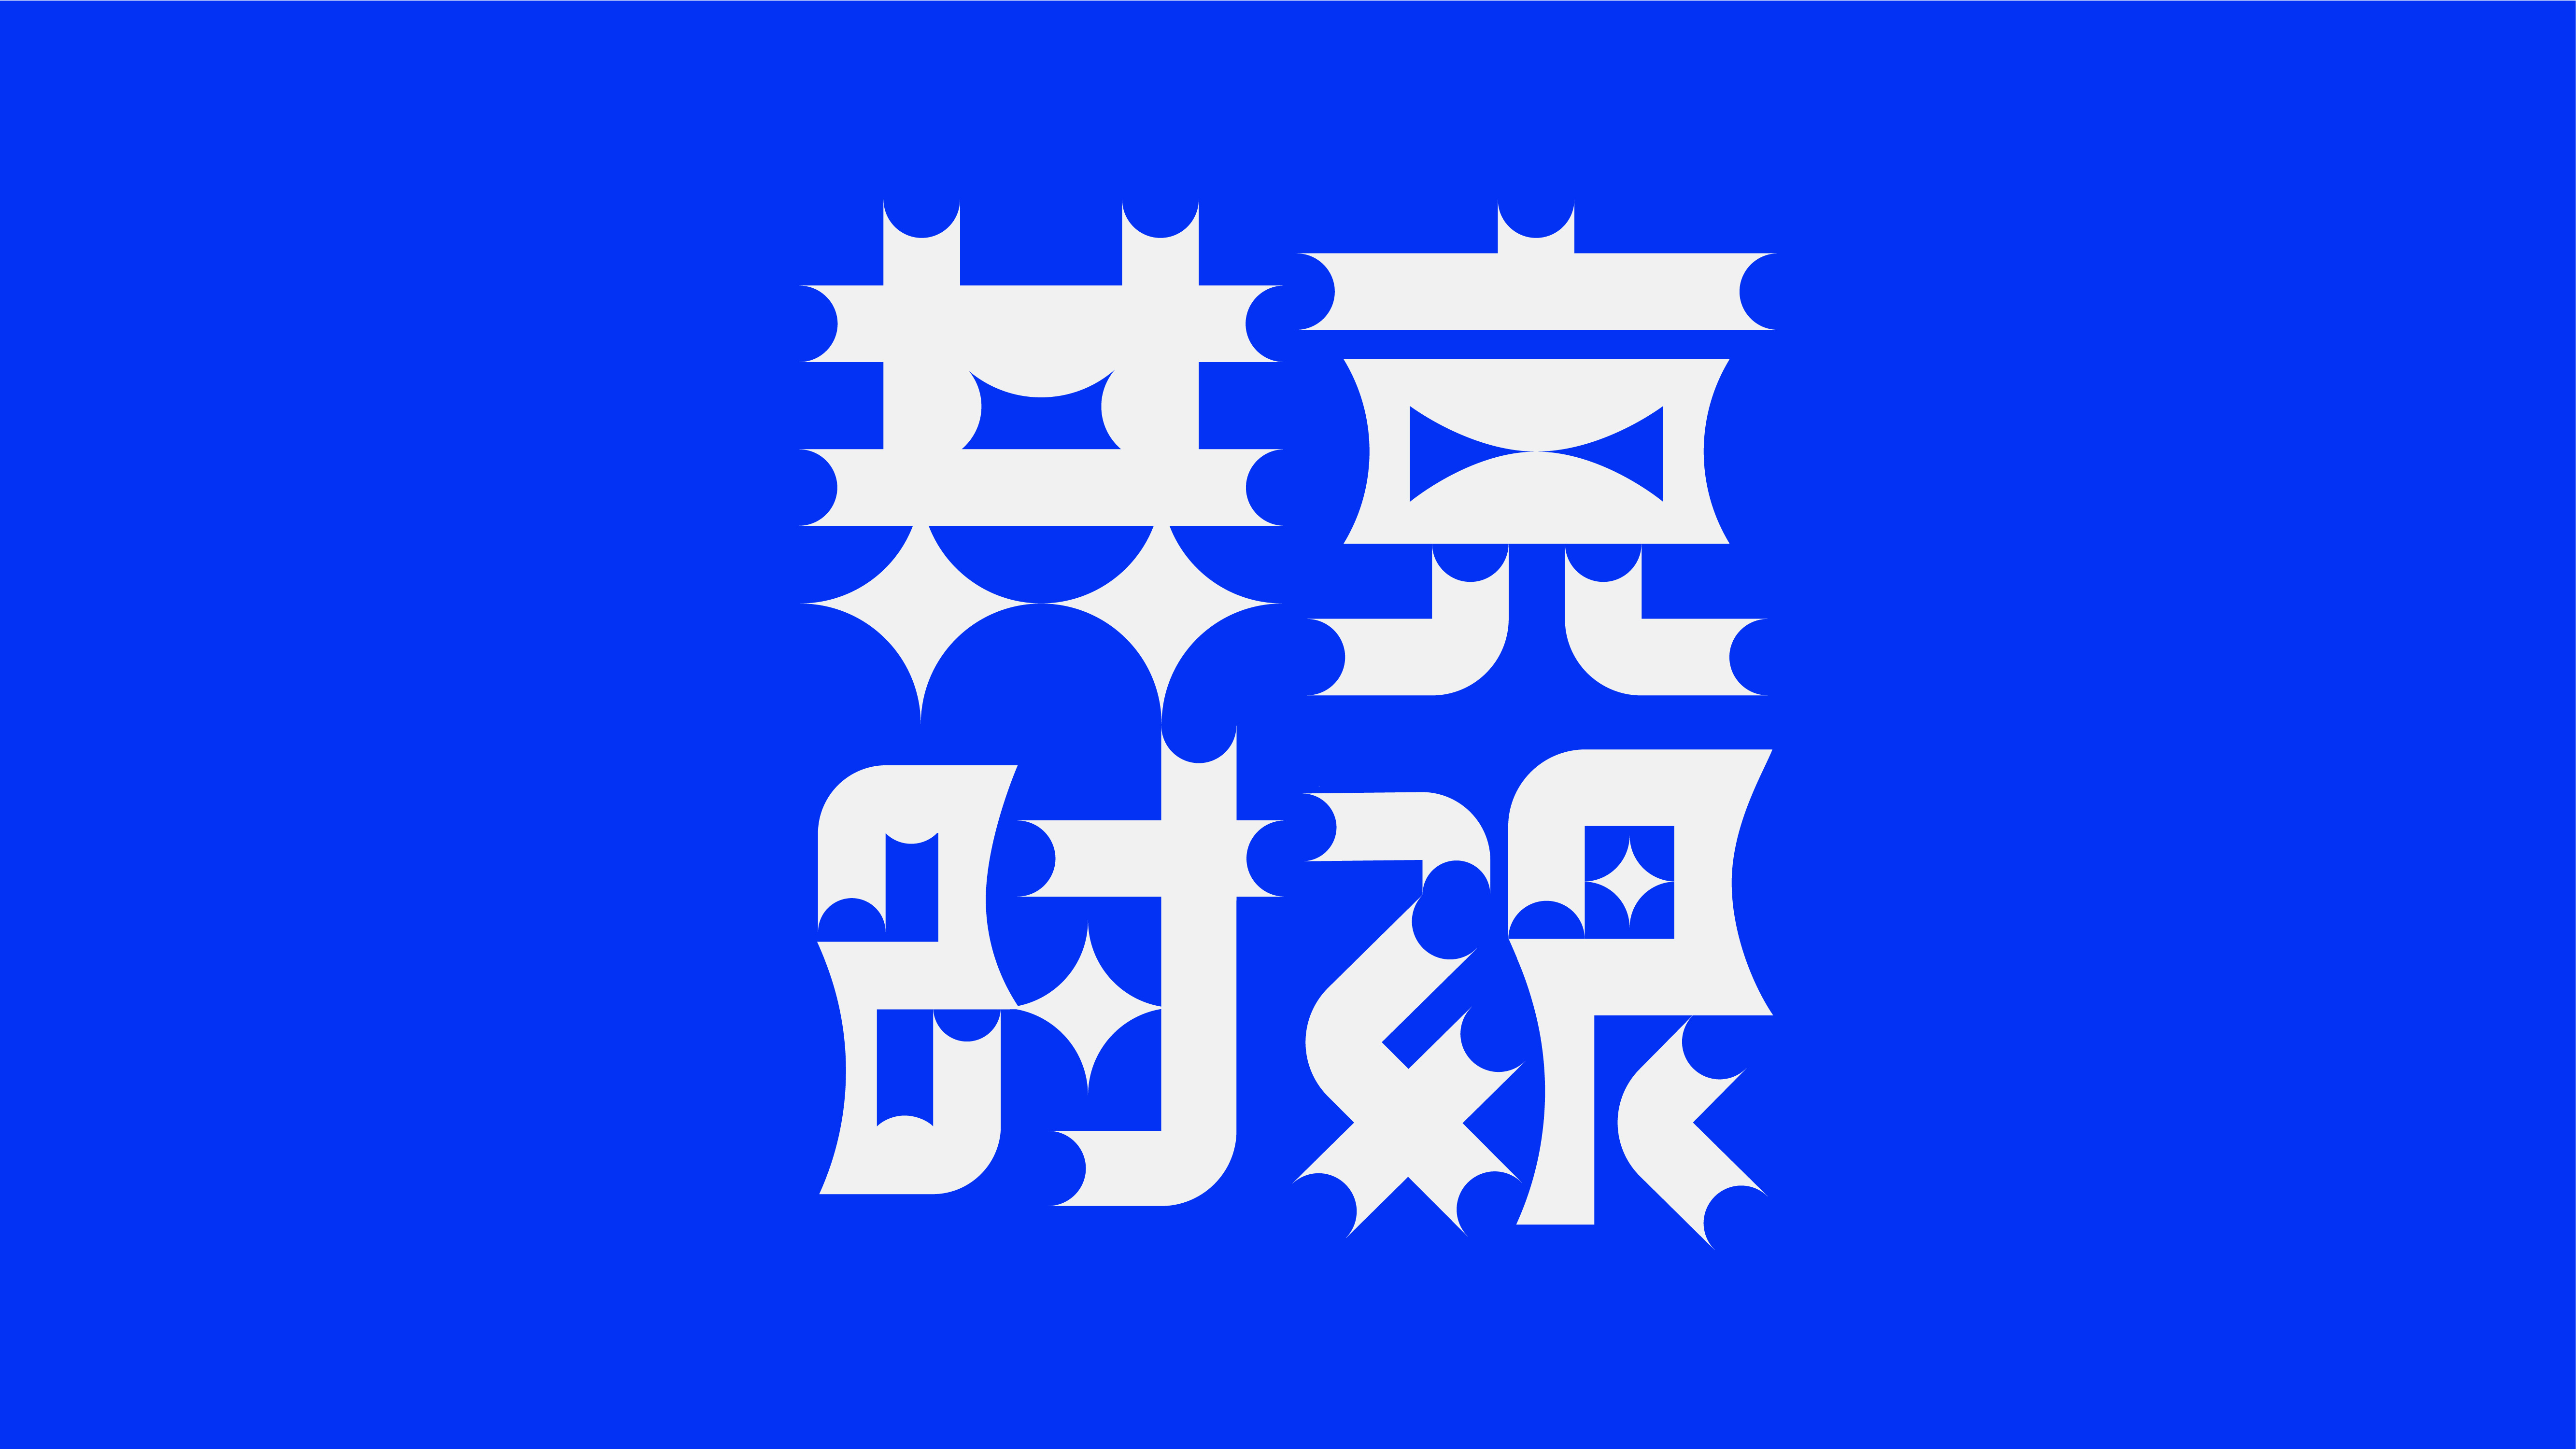 28p The latest collection of Chinese fonts #29